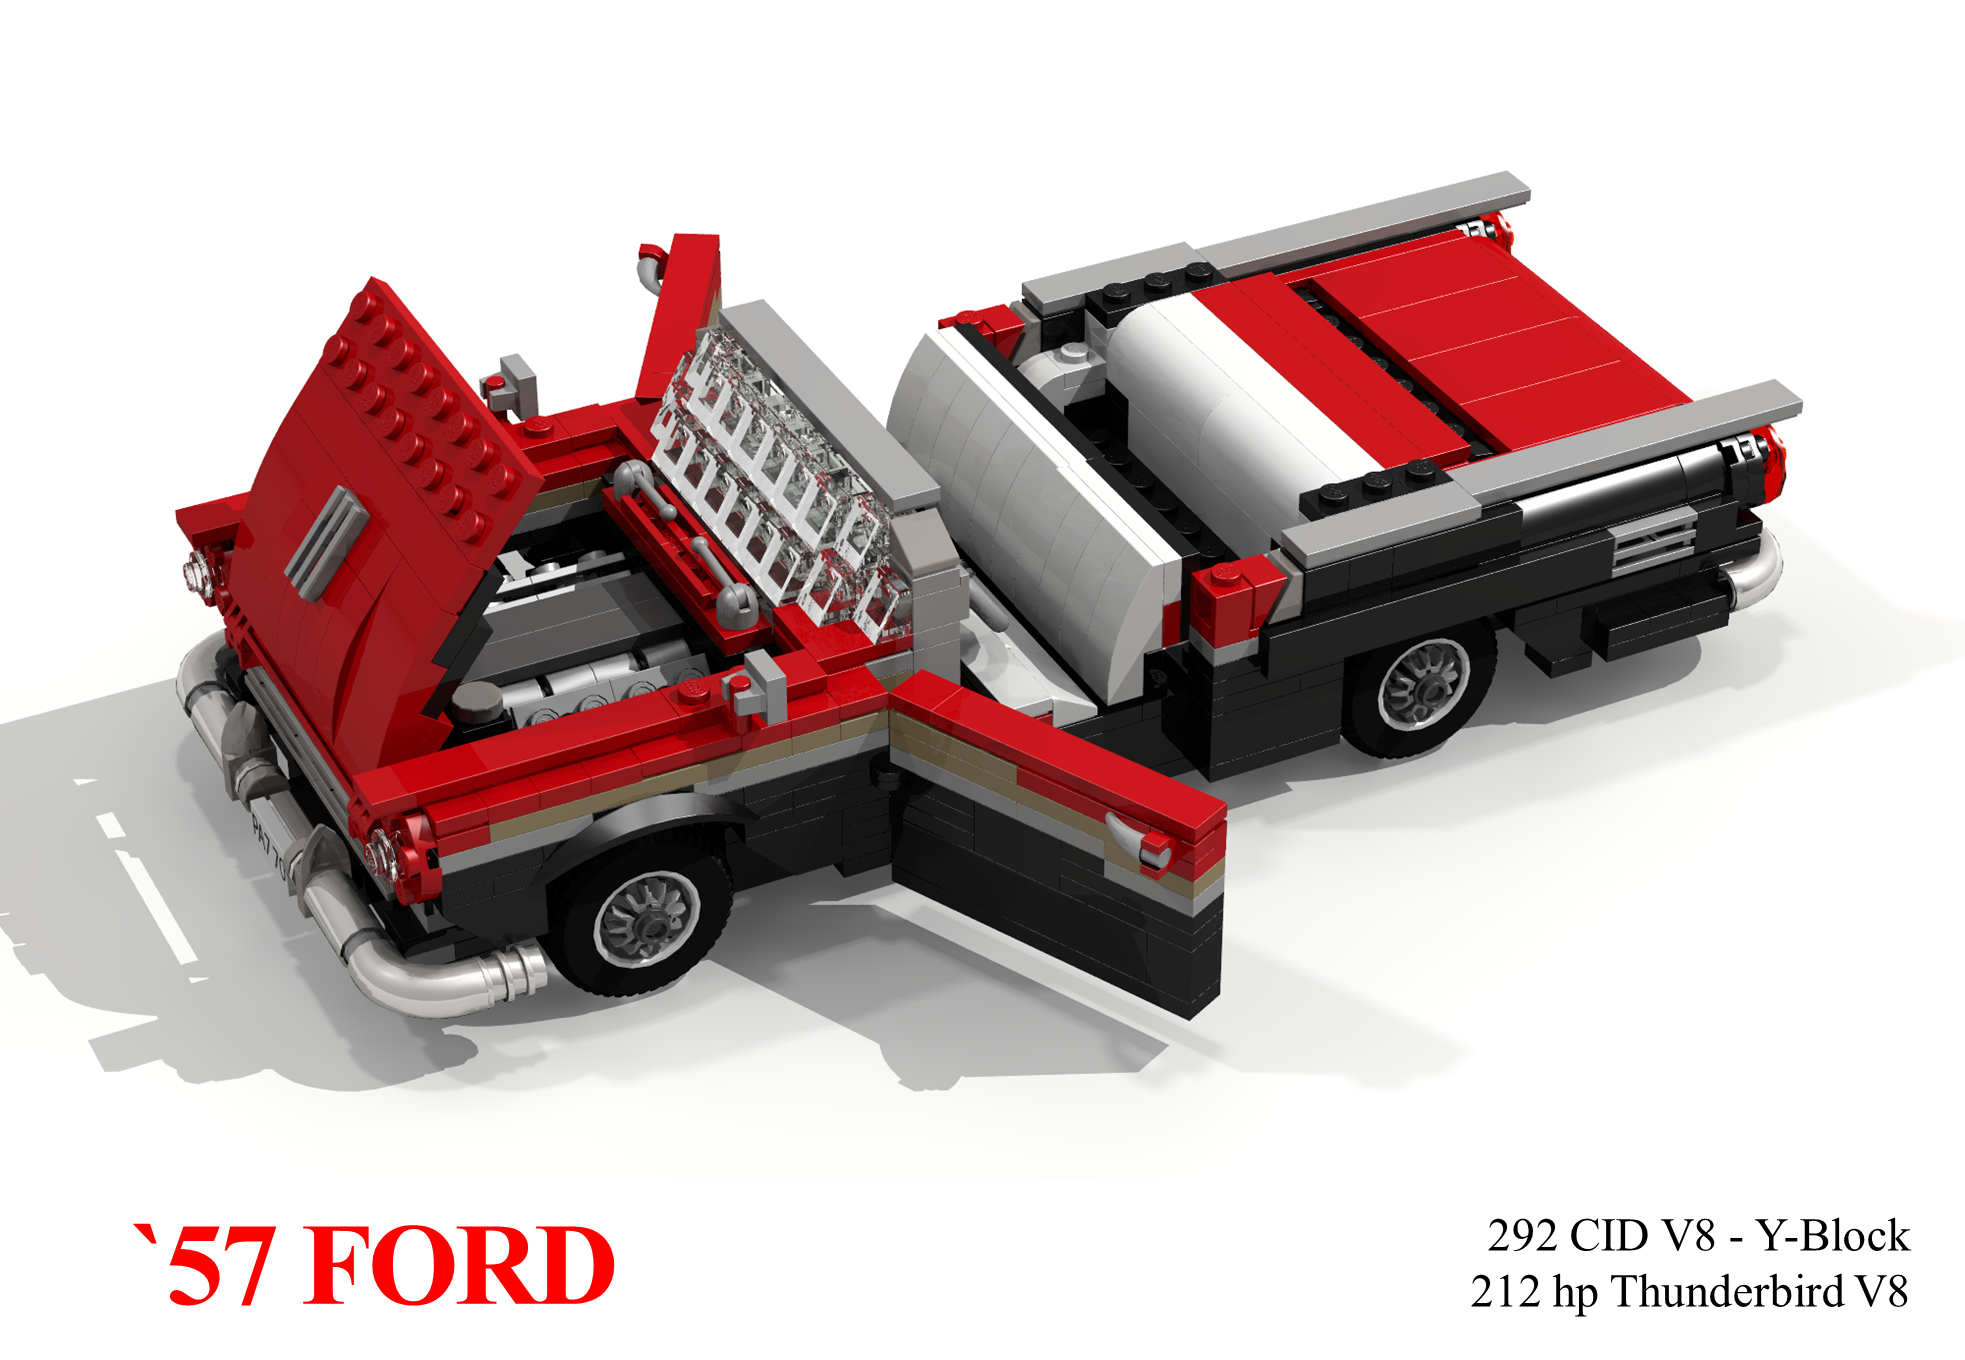 ford_1957_fairlane_convertible_06.png